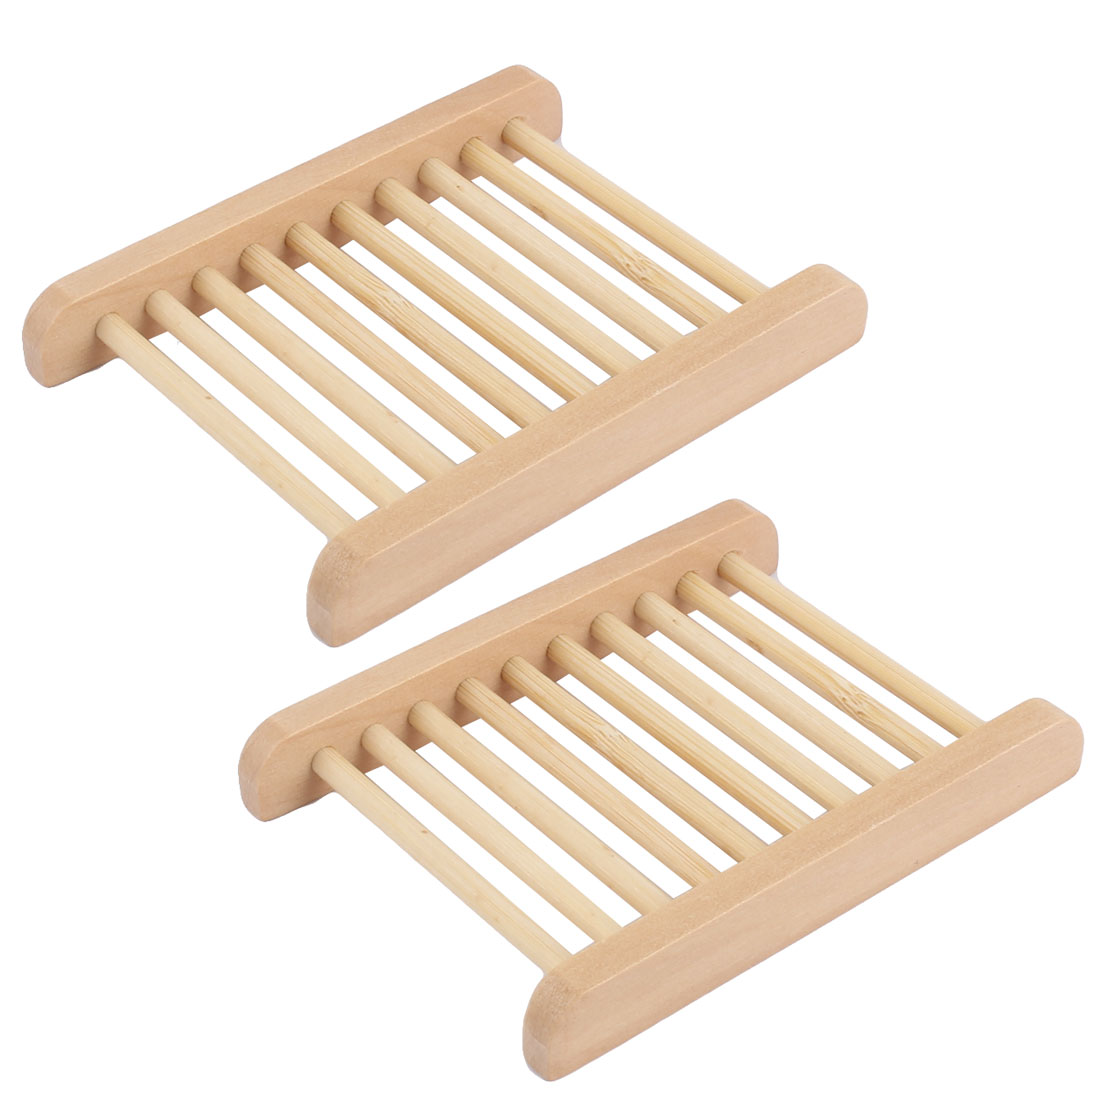 Uxcell Bathroom Natural Wooden Shower Soap Holder Rack Tray 11.5 x 8.5cm 2pcs